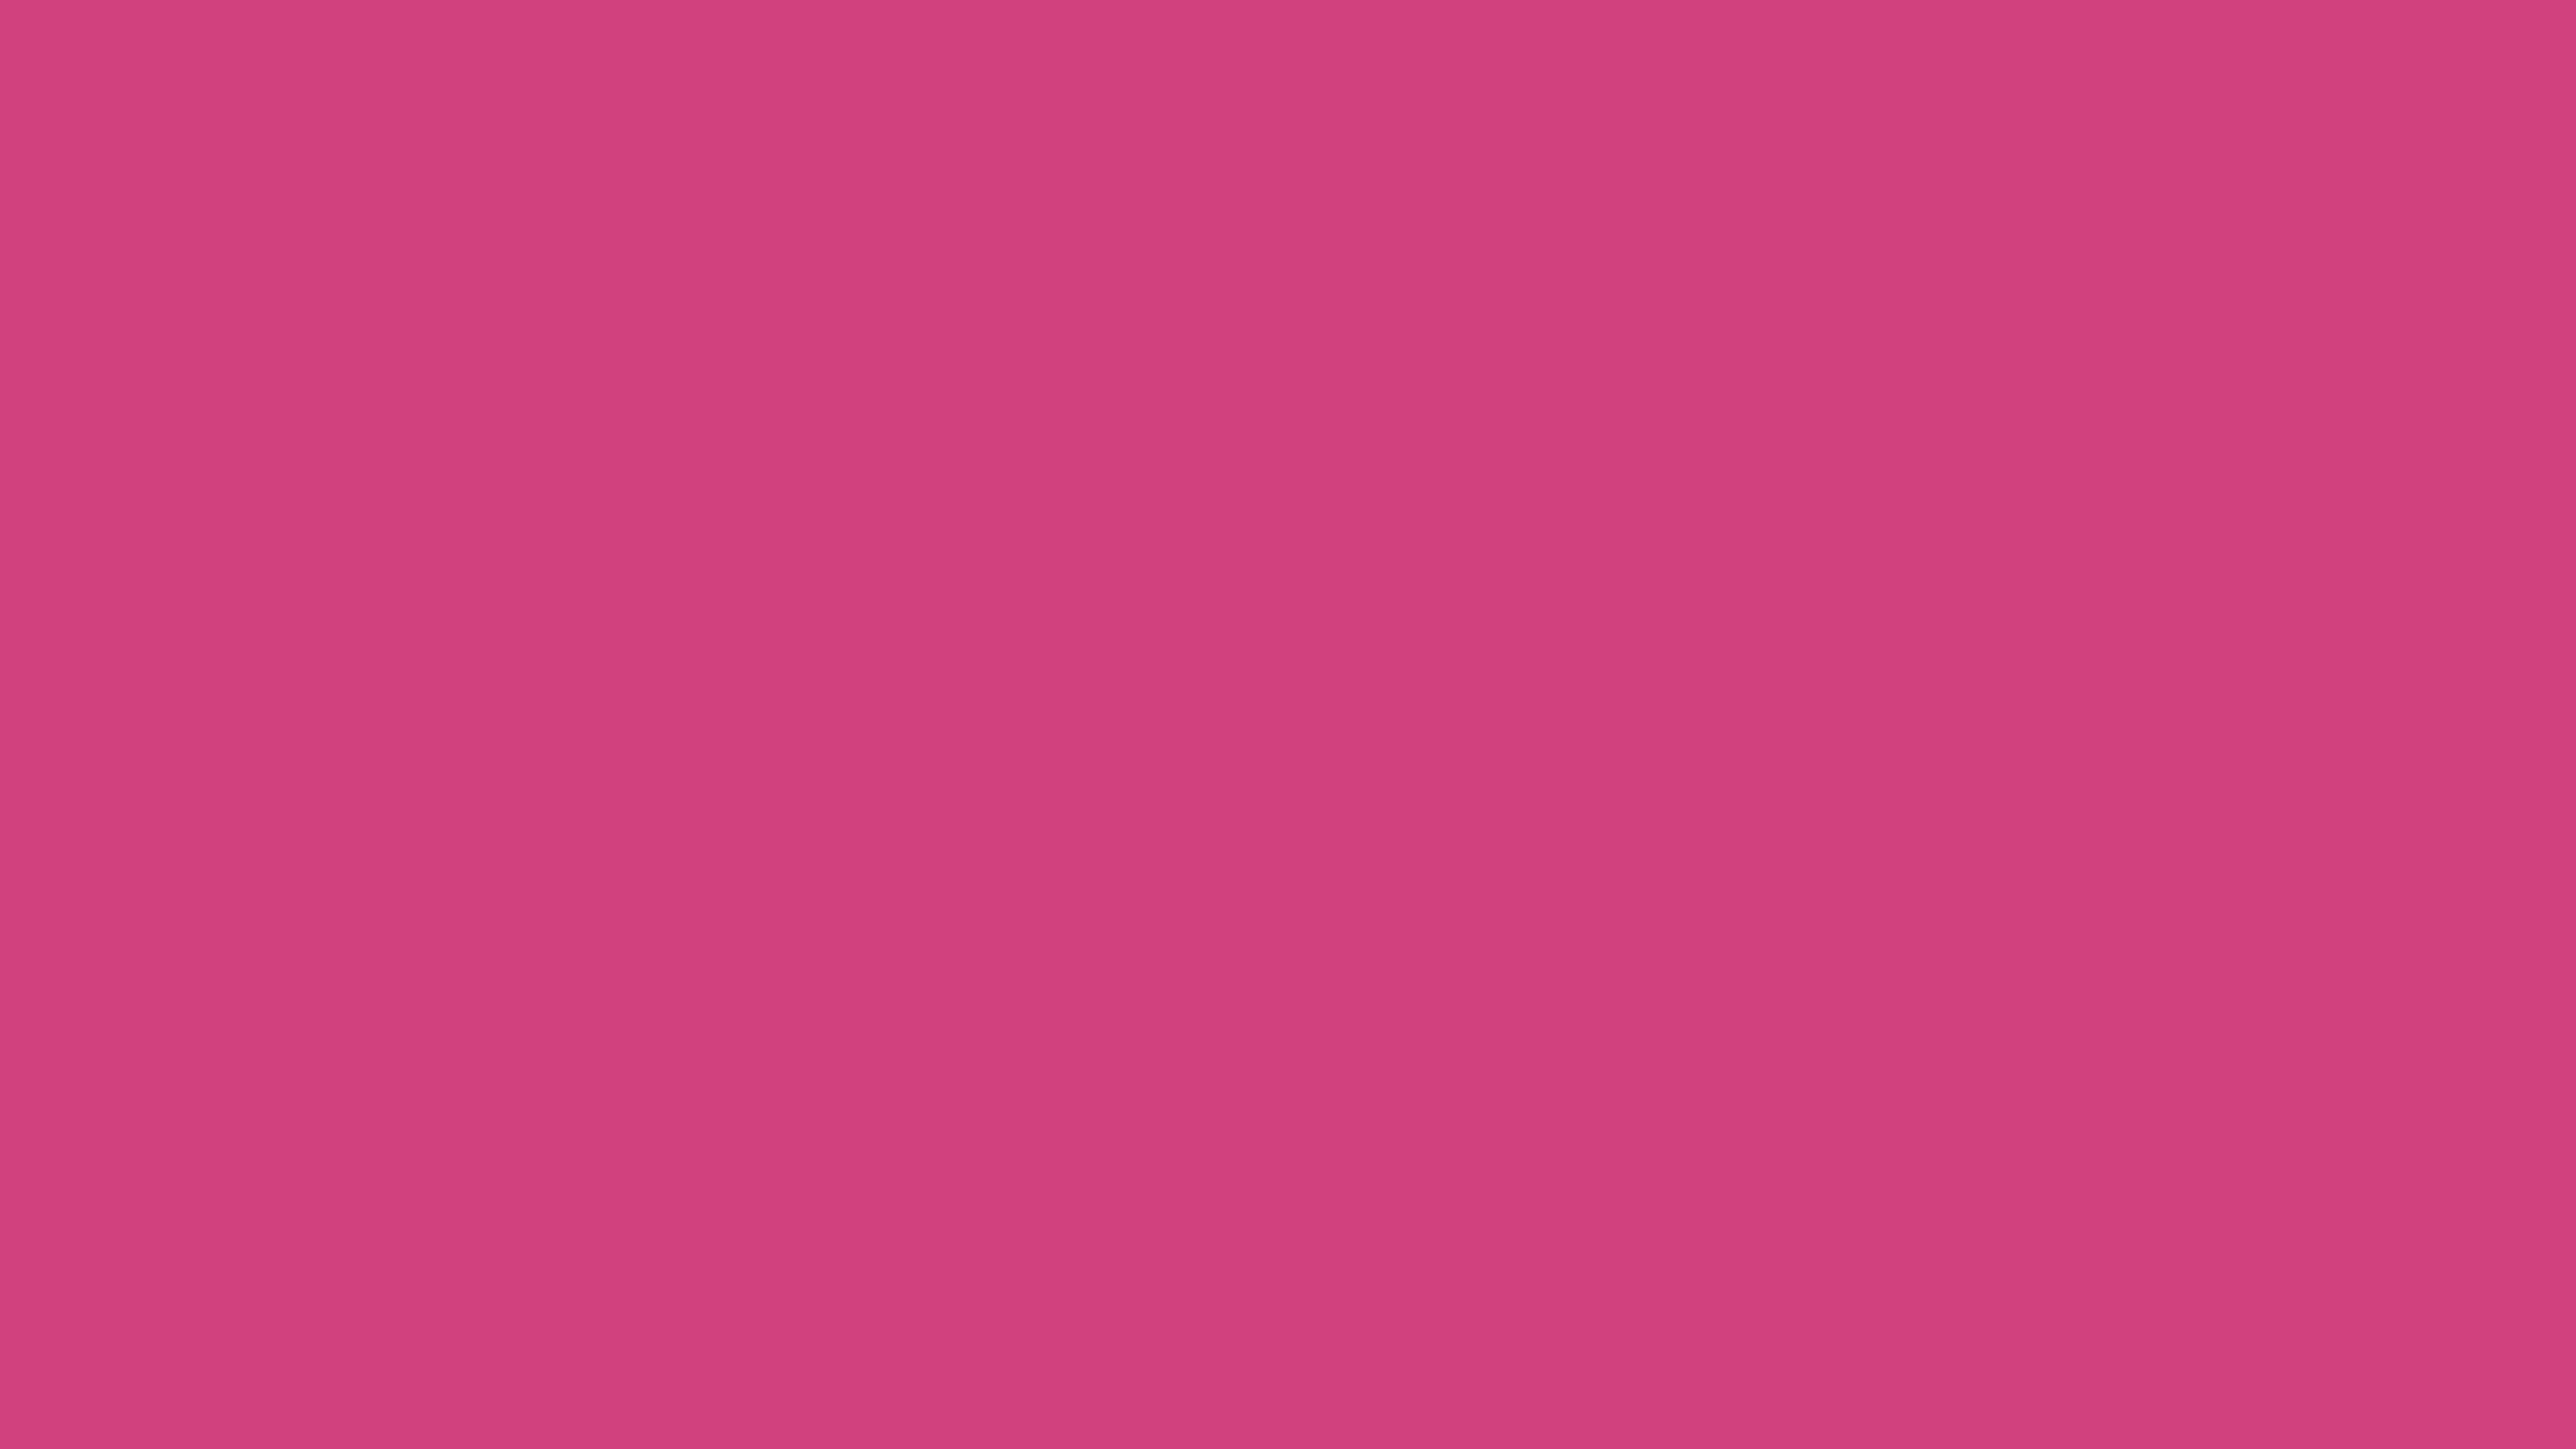 3840x2160 Magenta Pantone Solid Color Background